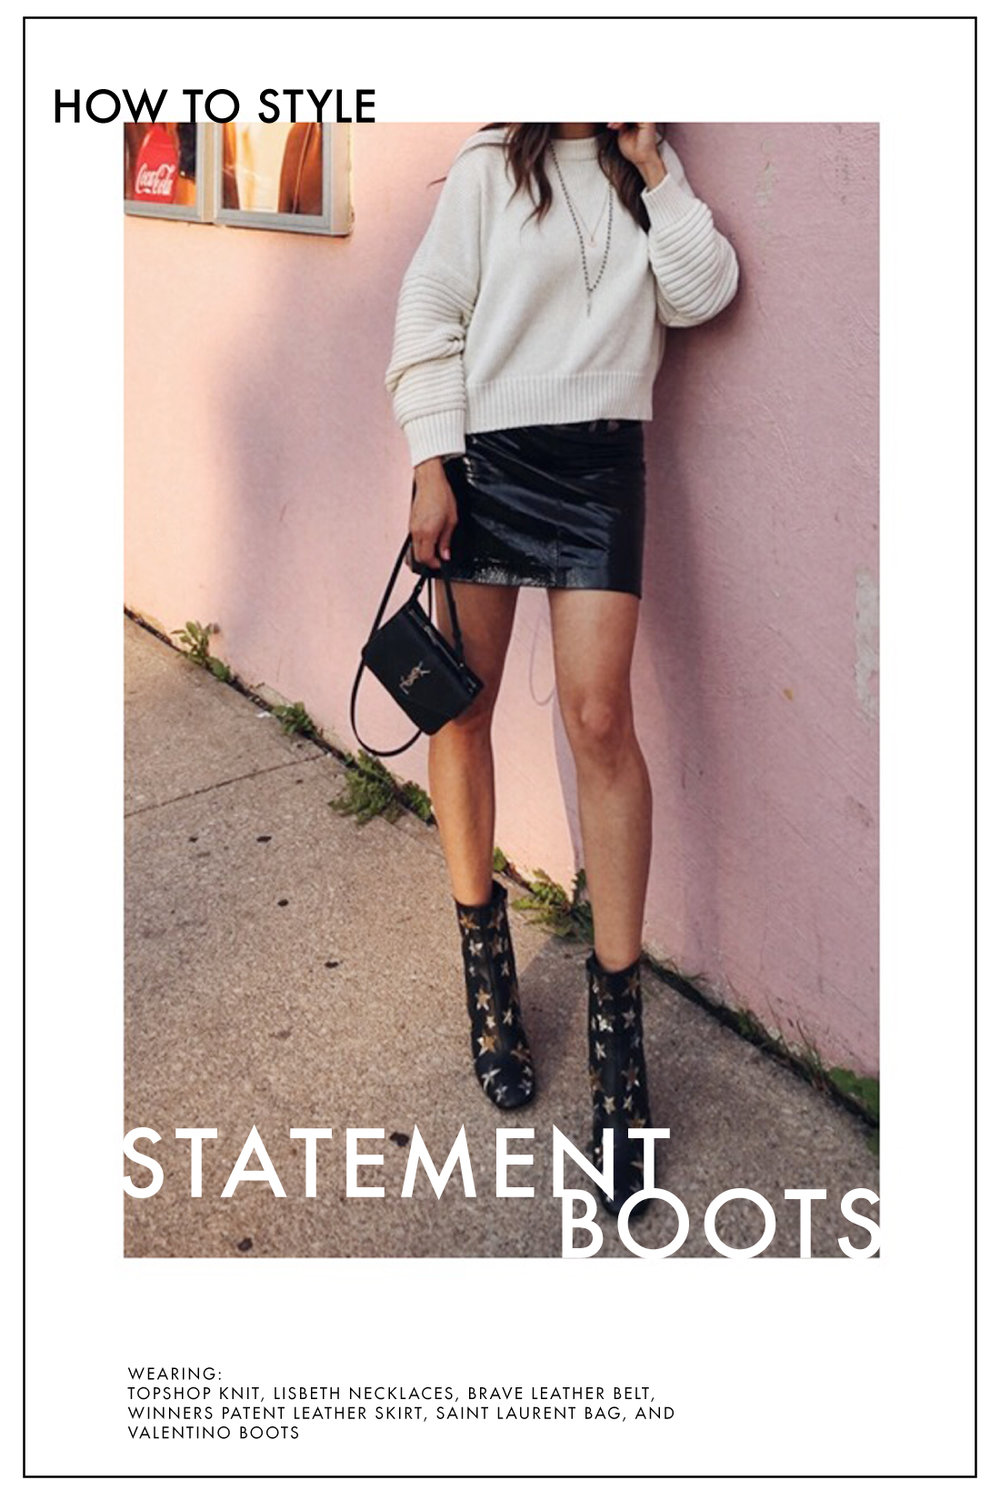 how-to-style-statement-shoes.jpg